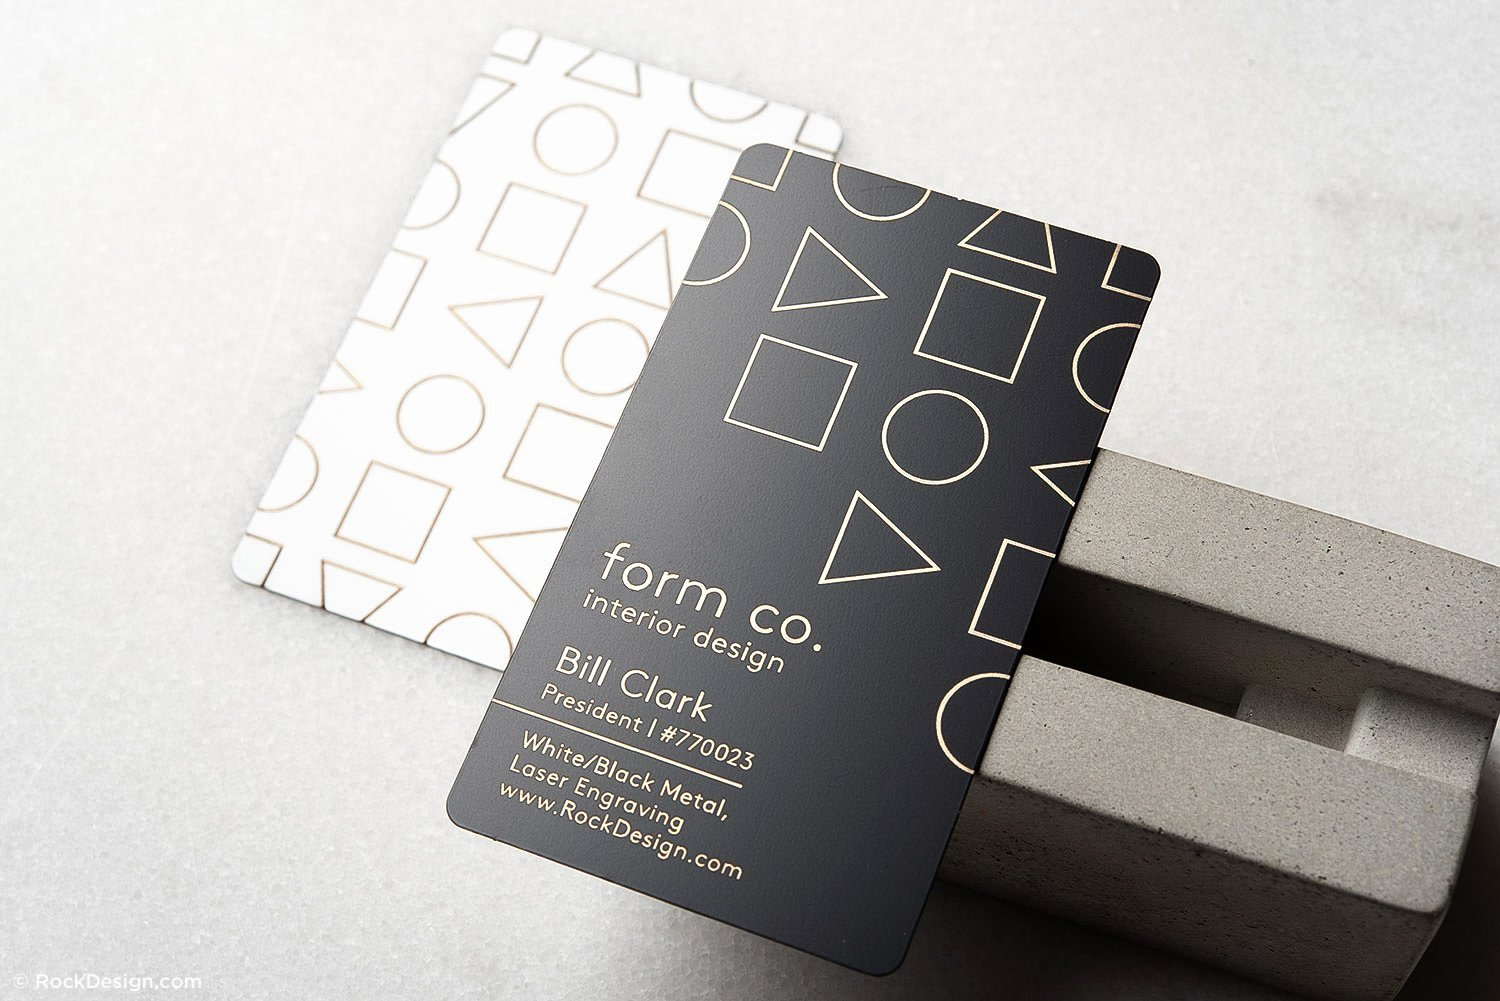 Interior Designer Business Cards Awesome Simple and Clean Interior Design Quick Metal Business Card Template form Co